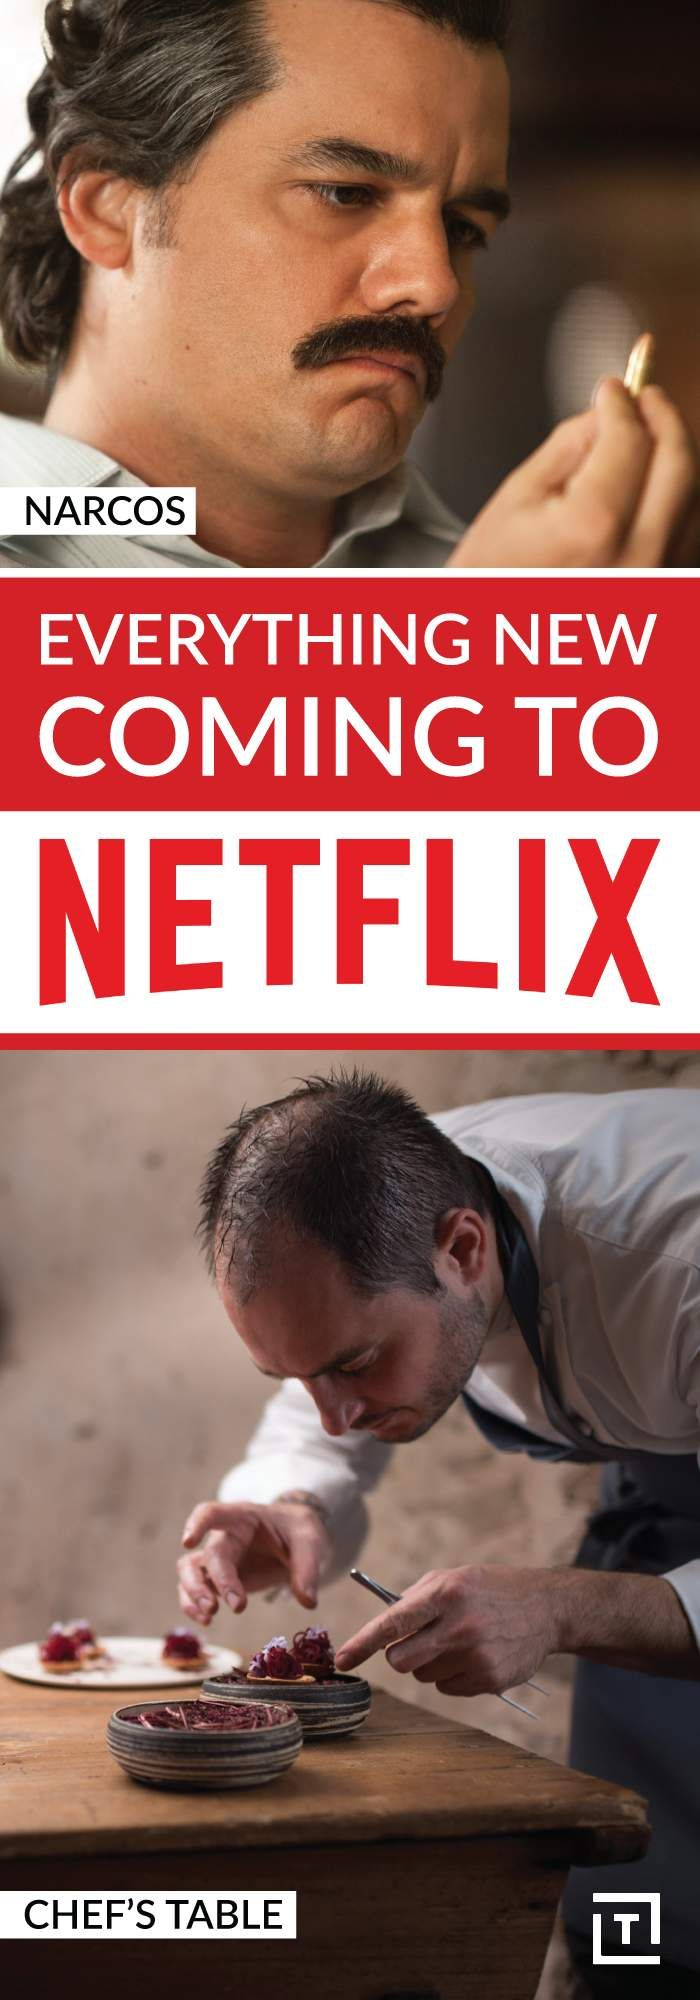 Every New Movie and TV Show Coming to Netflix in September